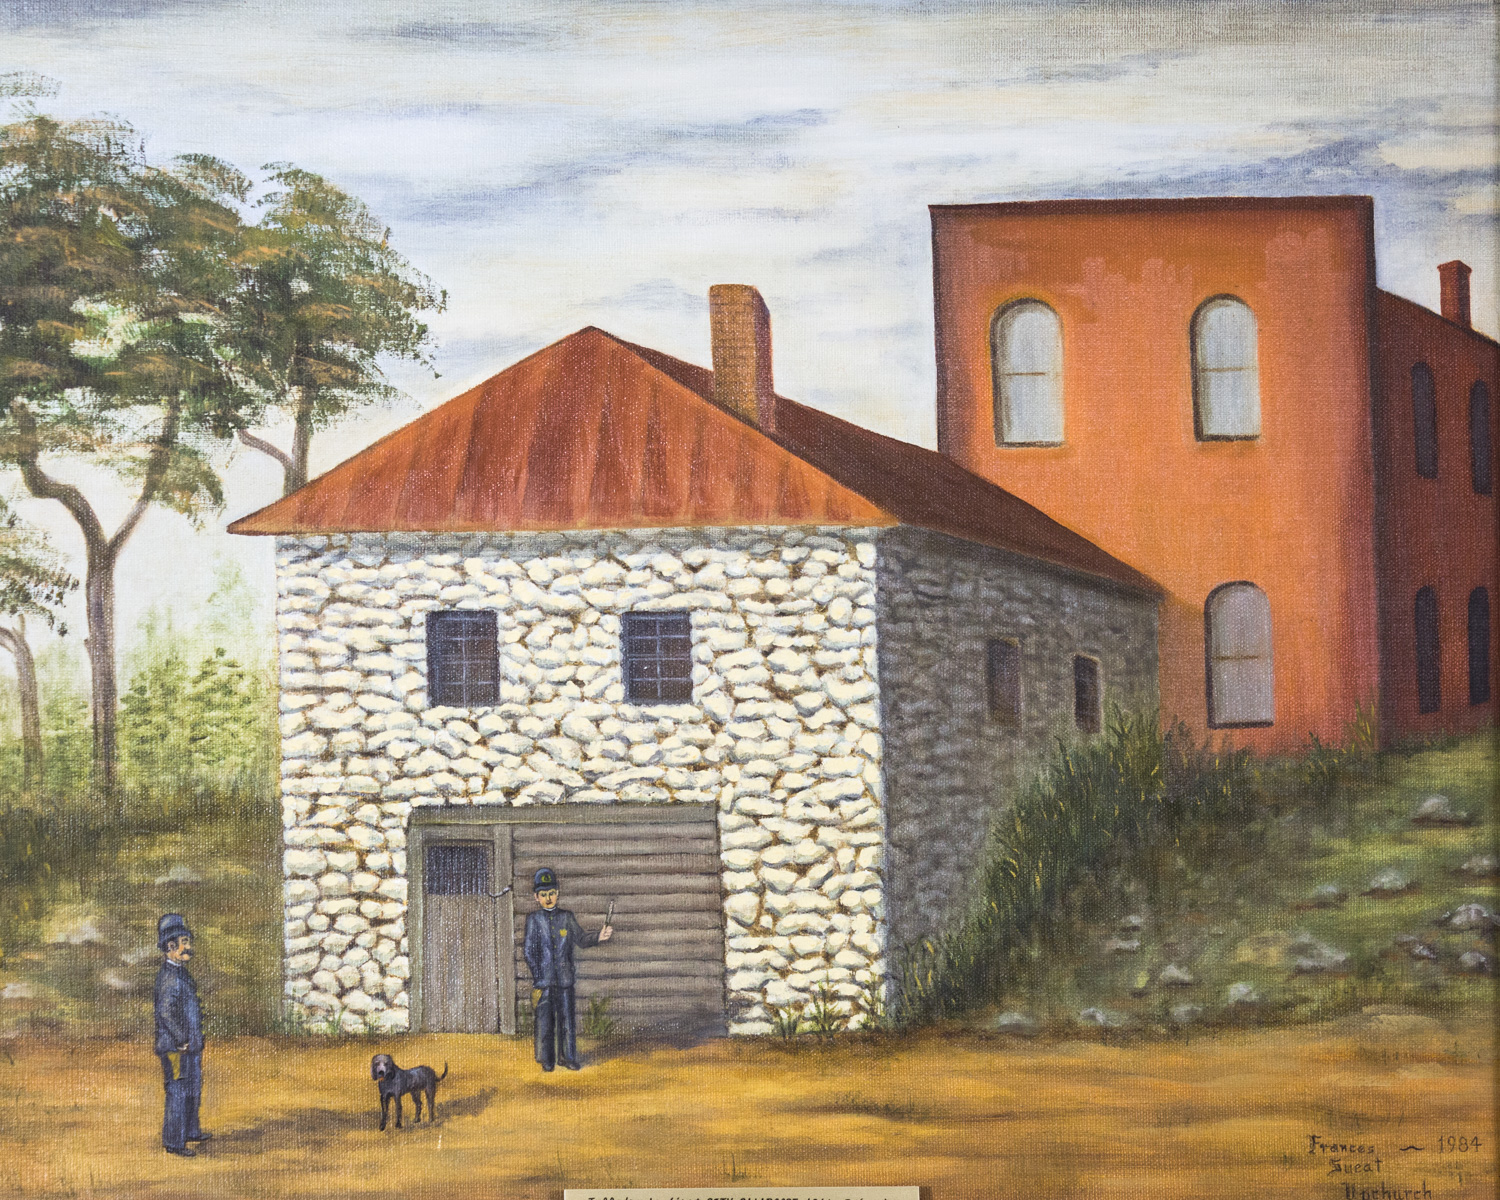 The Old Talladega City Calaboose, Frances Sweat Upchurch, 1984, 11 Paintings collection from Foundat